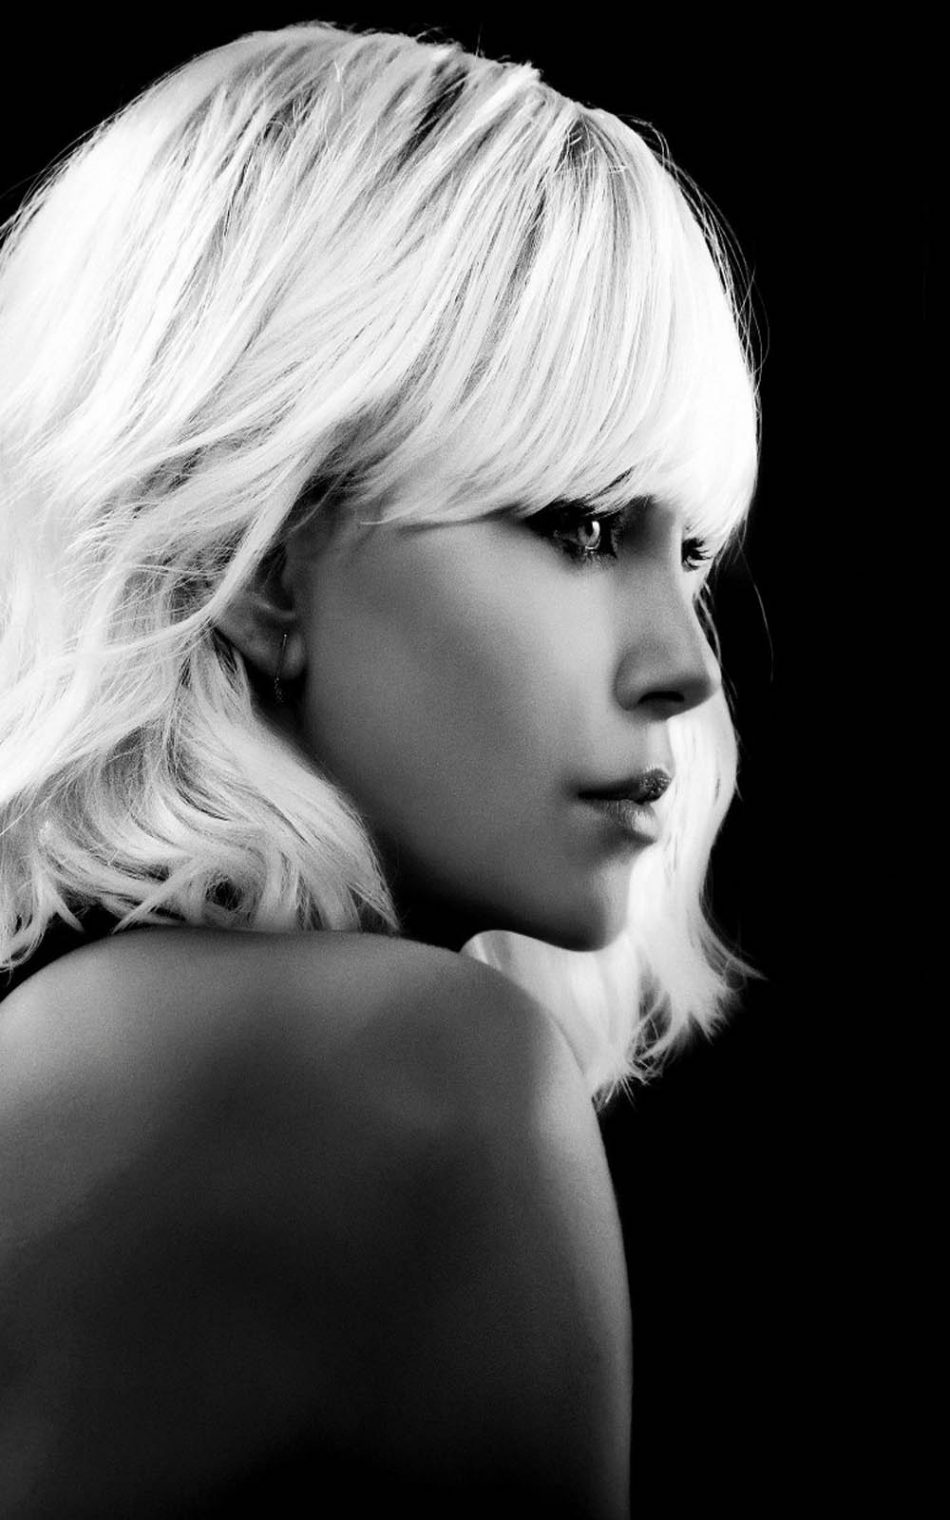 Charlize Theron In Atomic Blonde HD Mobile Wallpaper